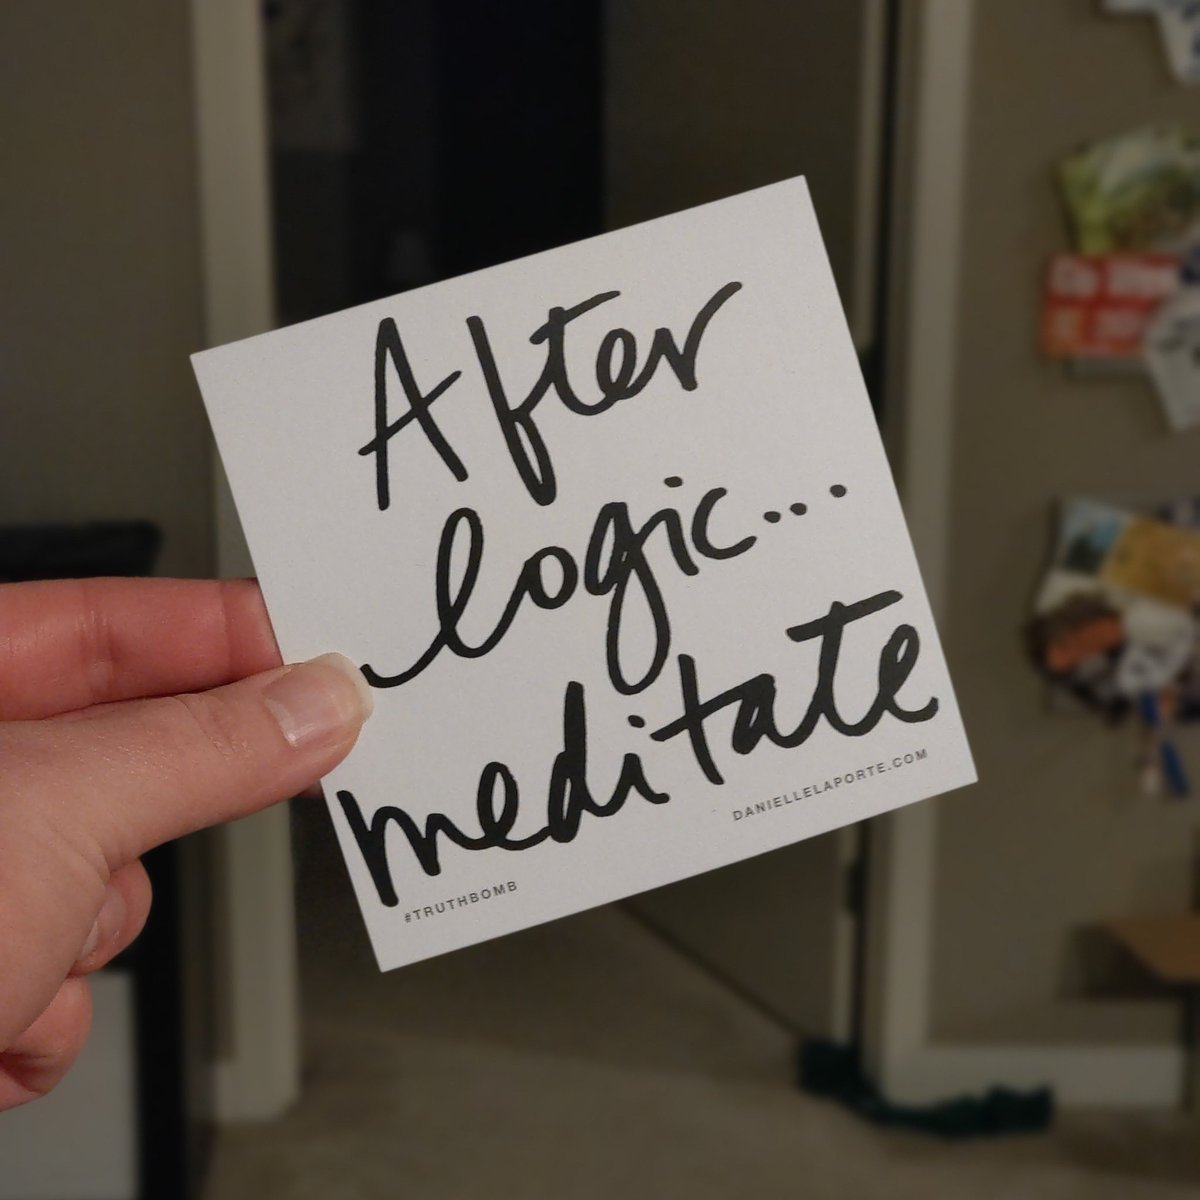 "Day #251 of @DanielleLaPorte #truthbomb  ""After logic... Meditate""  #thoughtoftheday #InItTogether #WeGotThisWA #mindfulness #BeKind #BePositive #wellness #StayHome #gratitude #MondayMotivation #MondayMood #WashYourHands #WearAMask #WearADamnMask #AloneTogether #TogetherWeCan https://t.co/LUI0DJaojT"